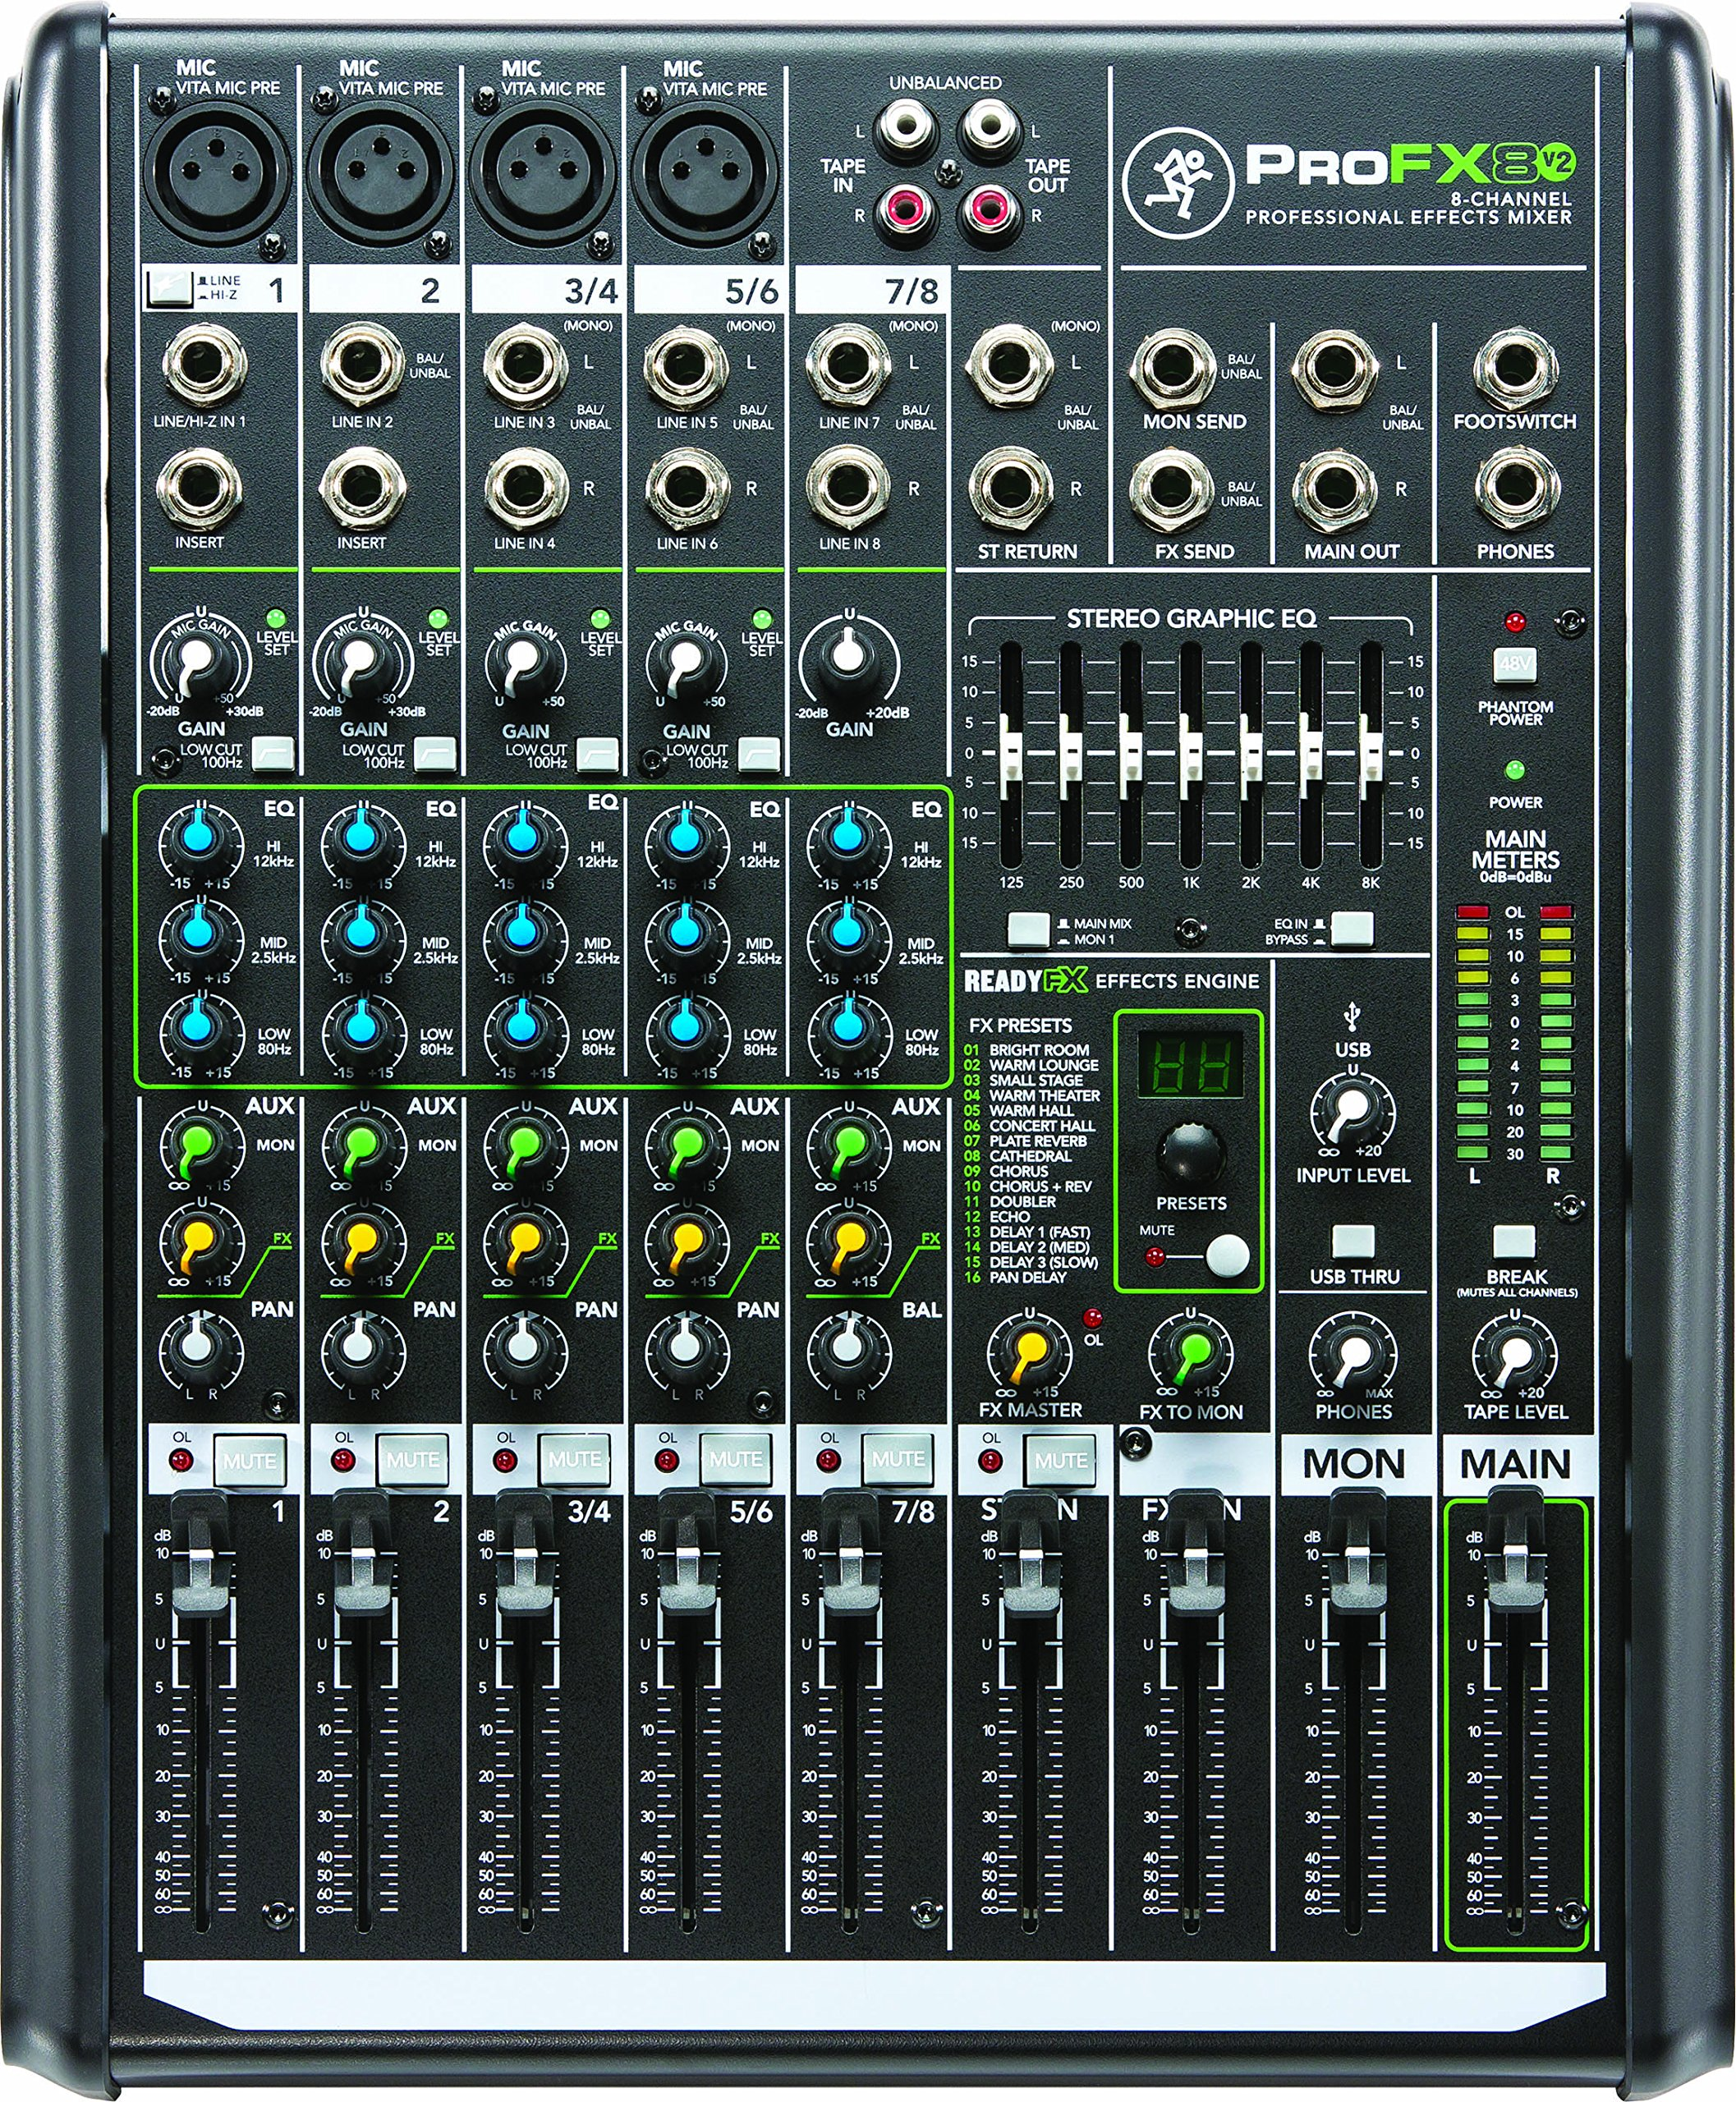 Mackie PROFX8V2 8-Channel Compact Mixer with USB and Effects by Mackie (Image #1)